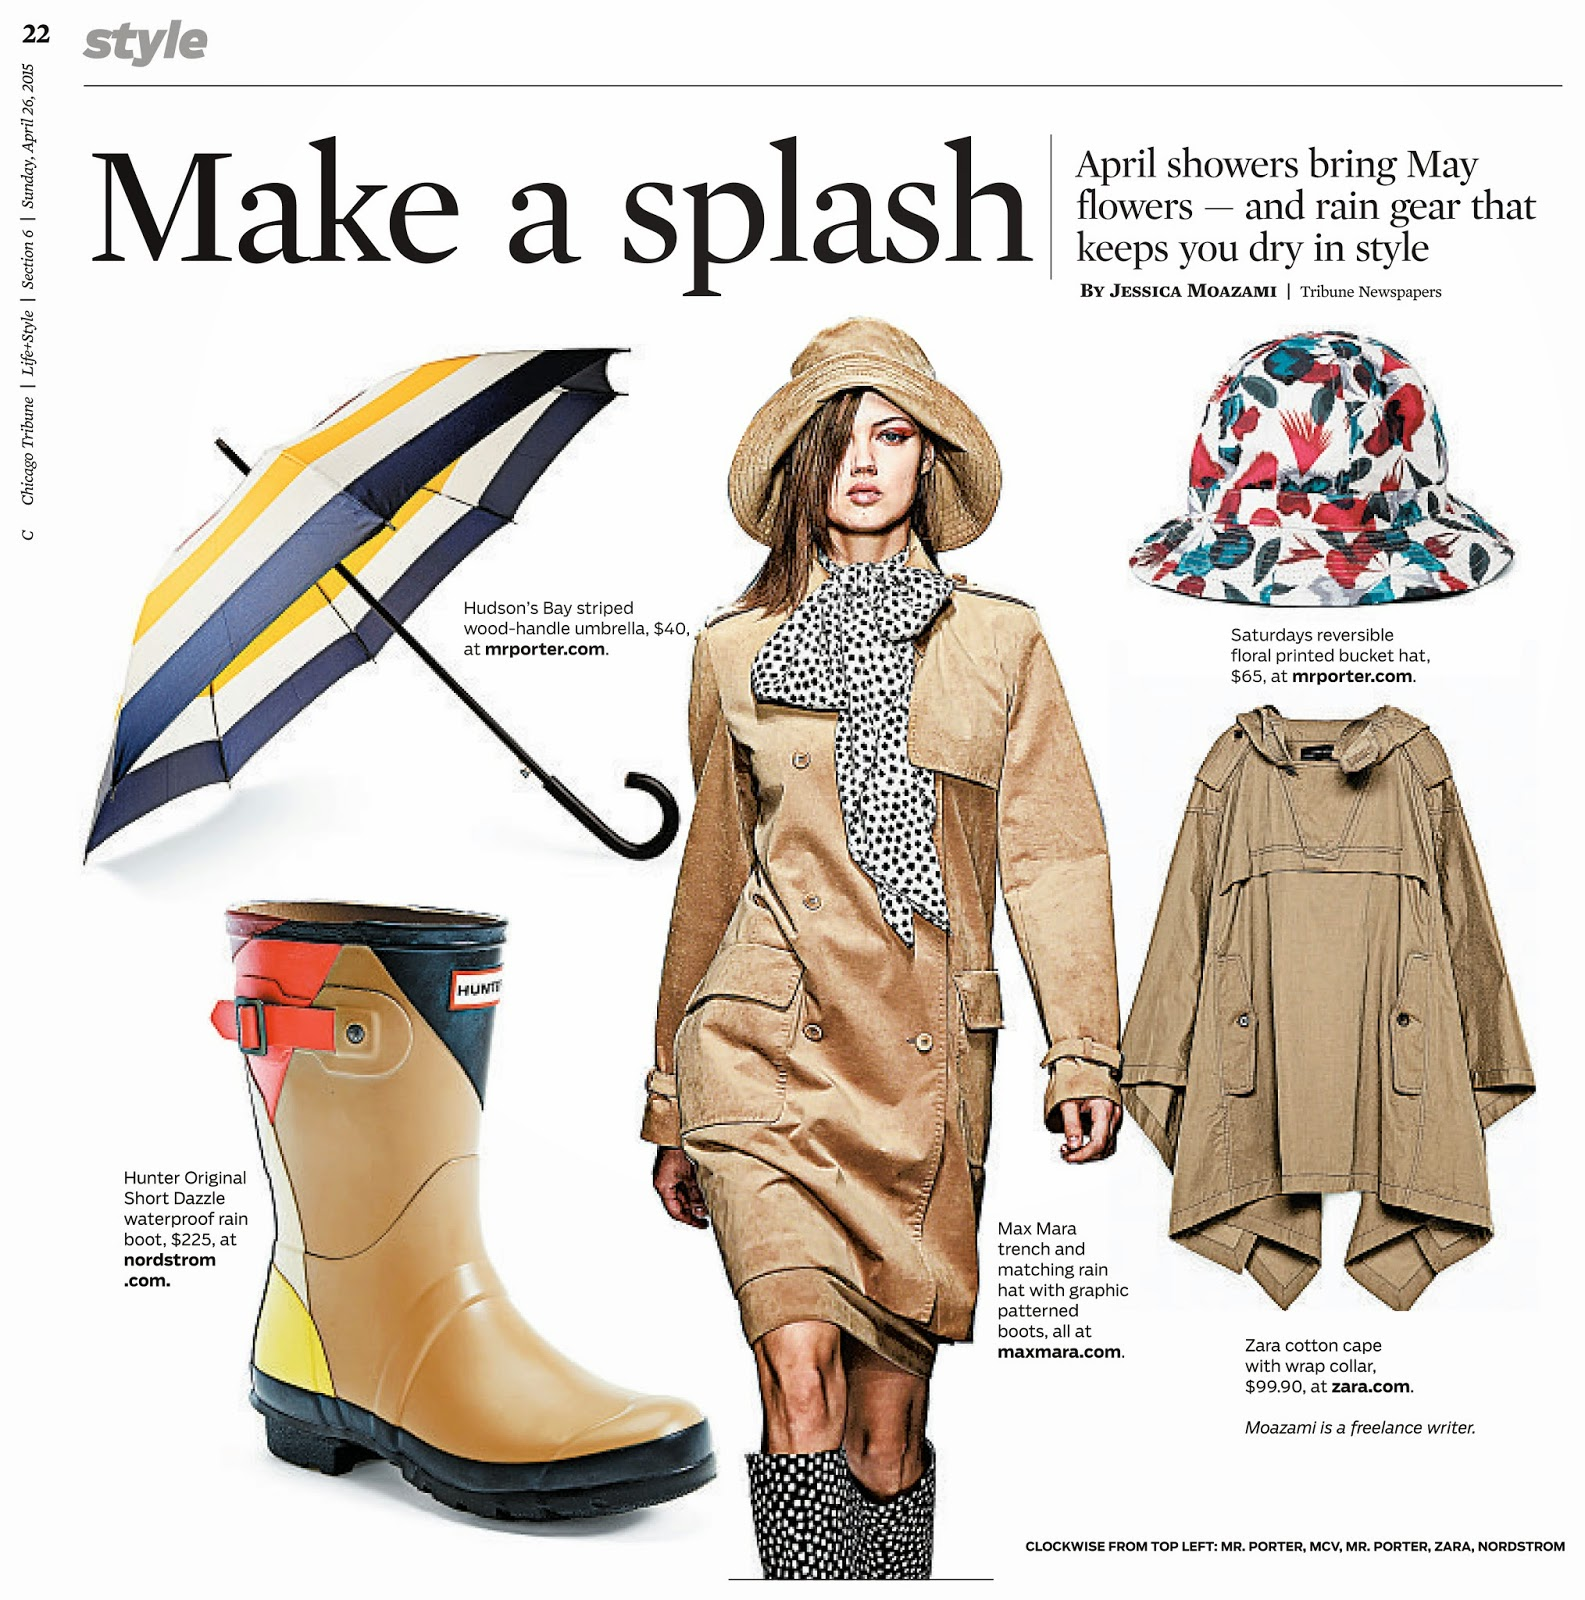 Chicago Tribune make a splash spring fashion by Jessica Moazami